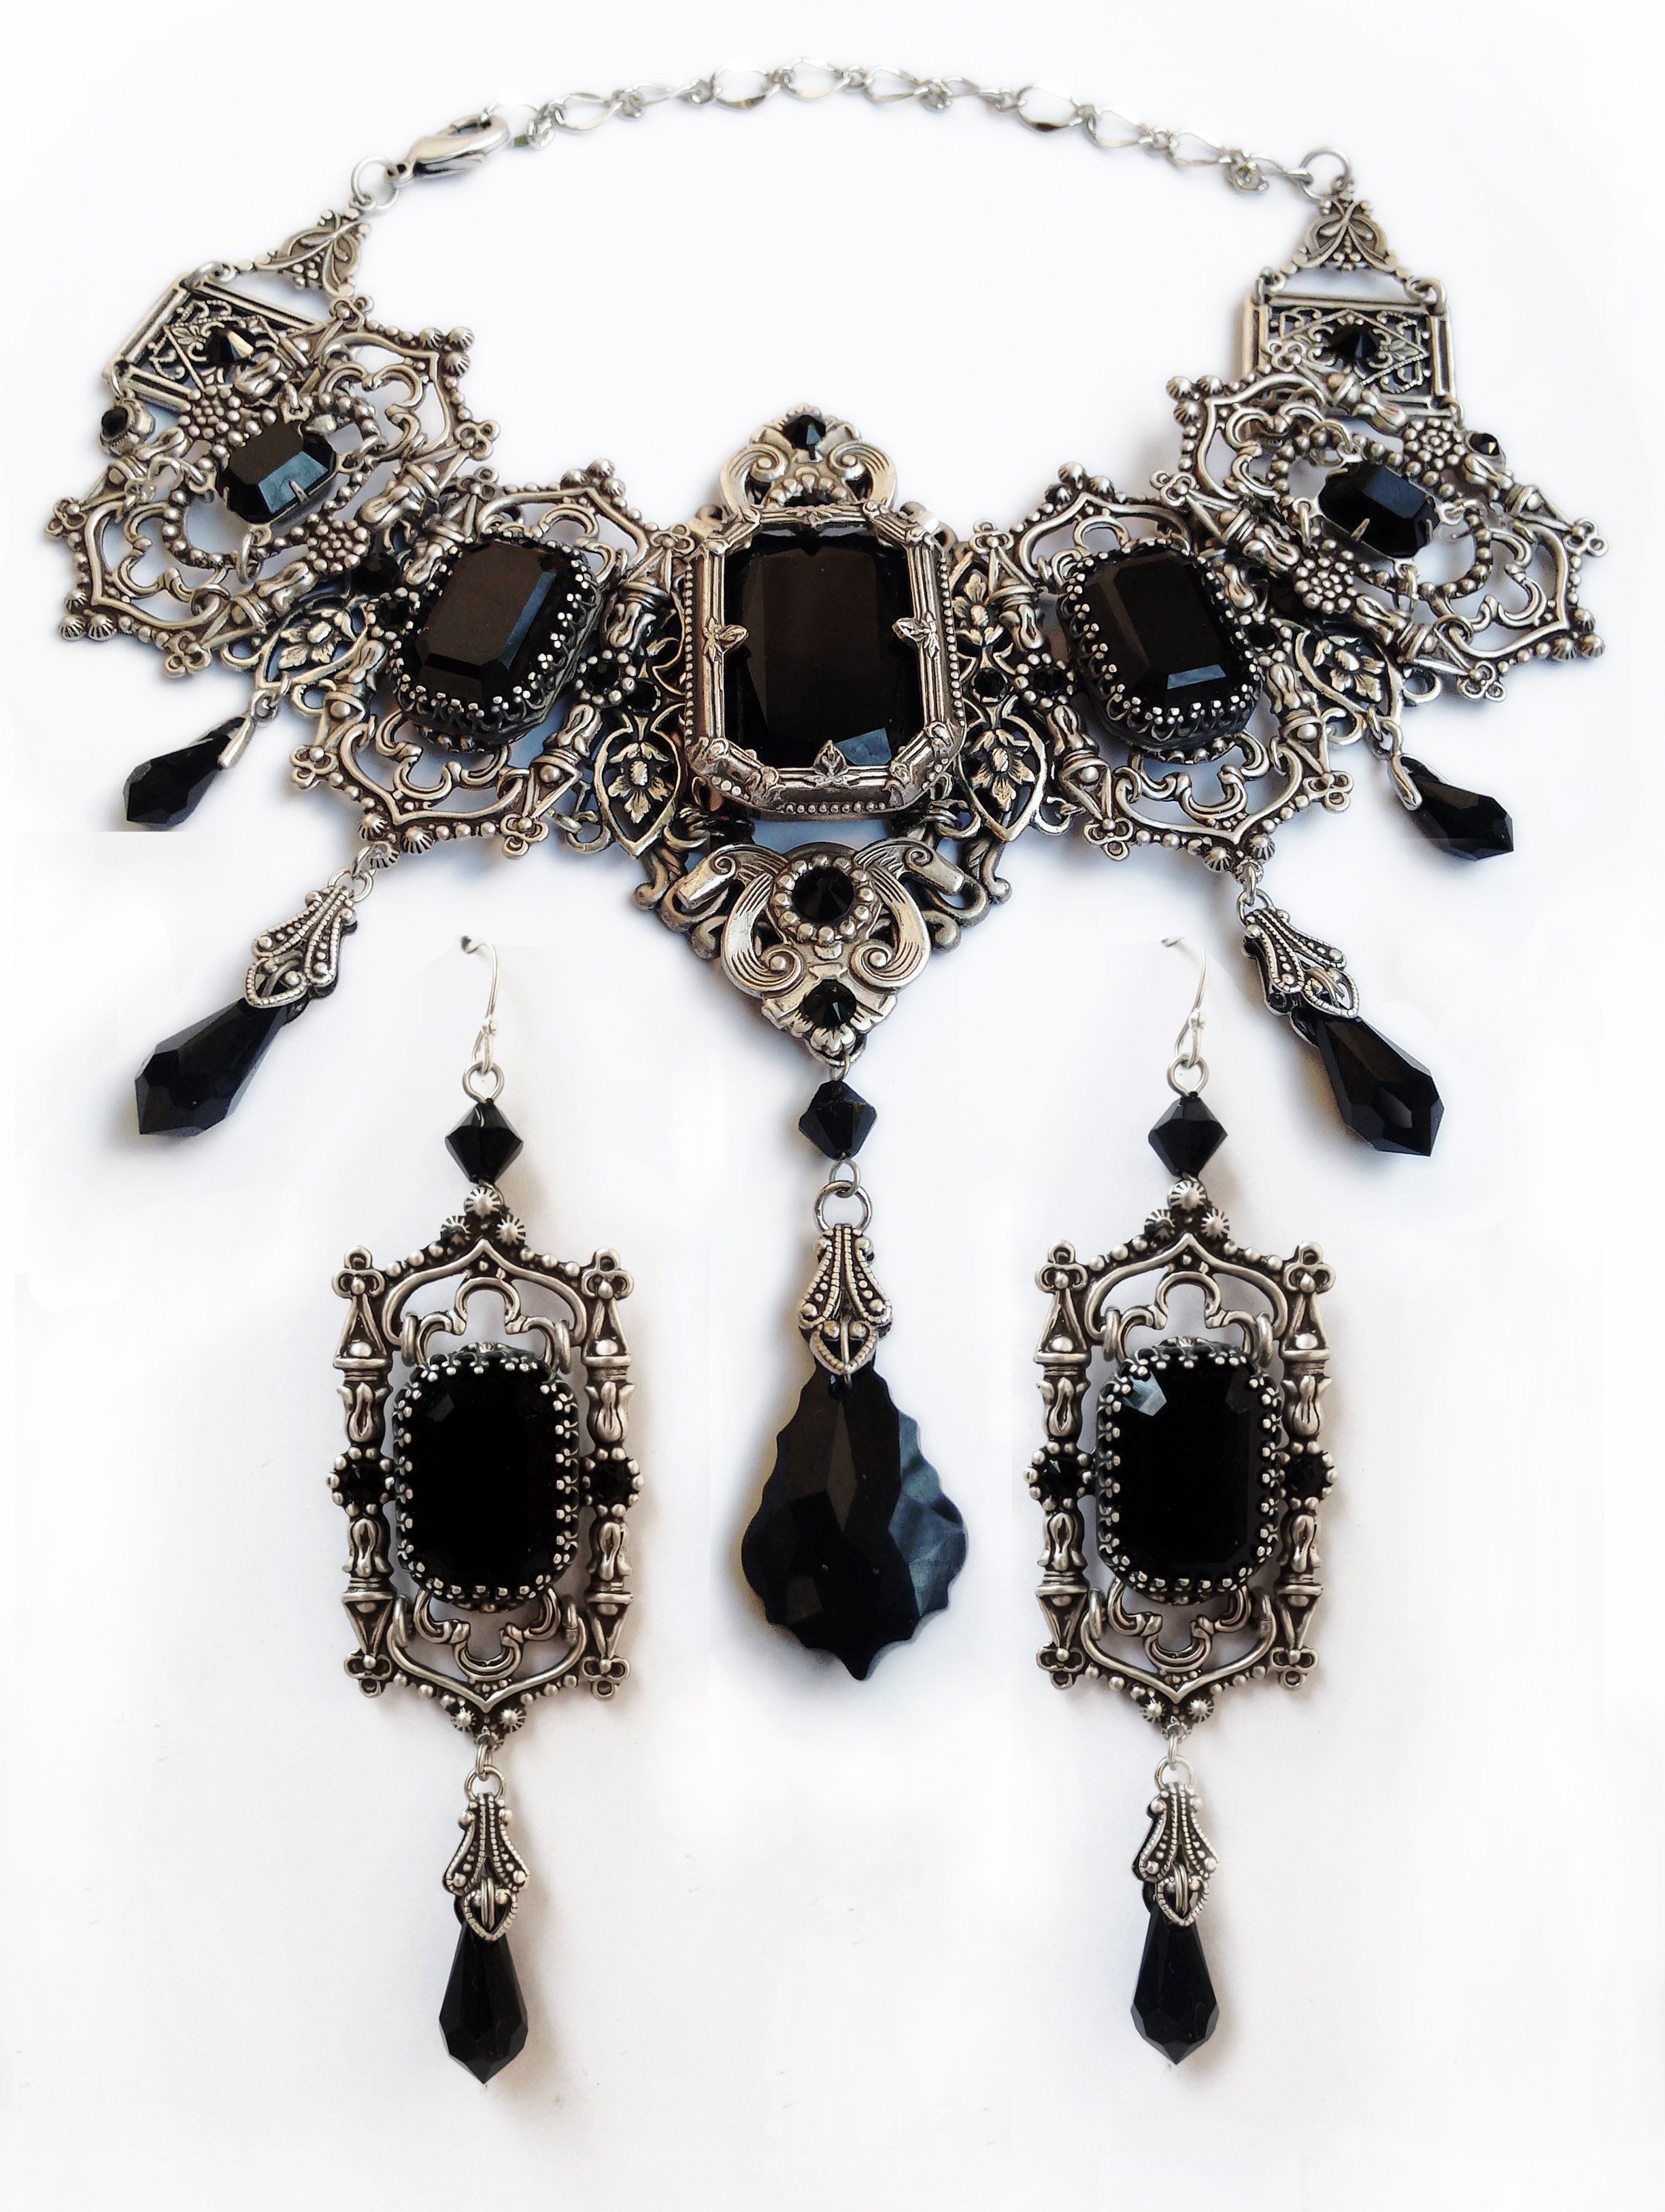 b7d85eb266c9a Grand Gothic Jewelry Set | beading 2 | Gothic jewelry, Jewelry, Earrings